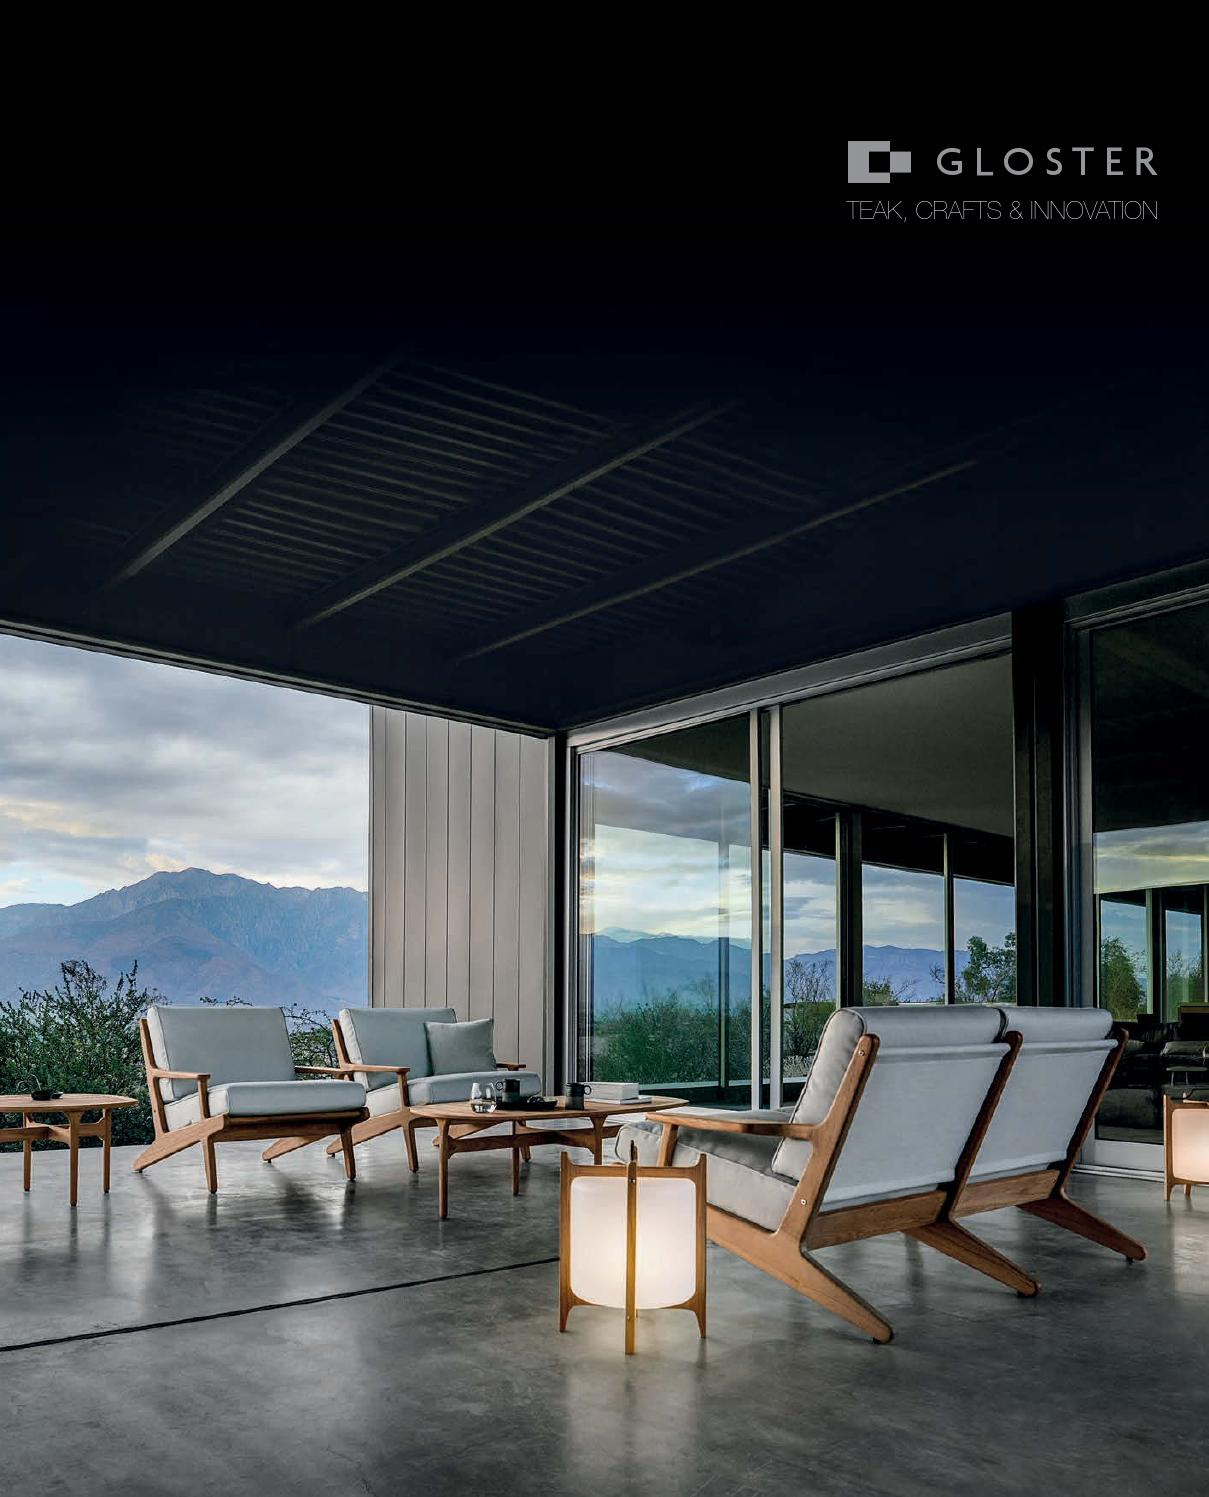 Mobilier Exterieur Gloster 2016 Glosterkatalog By Bwa Holding Ag Issuu